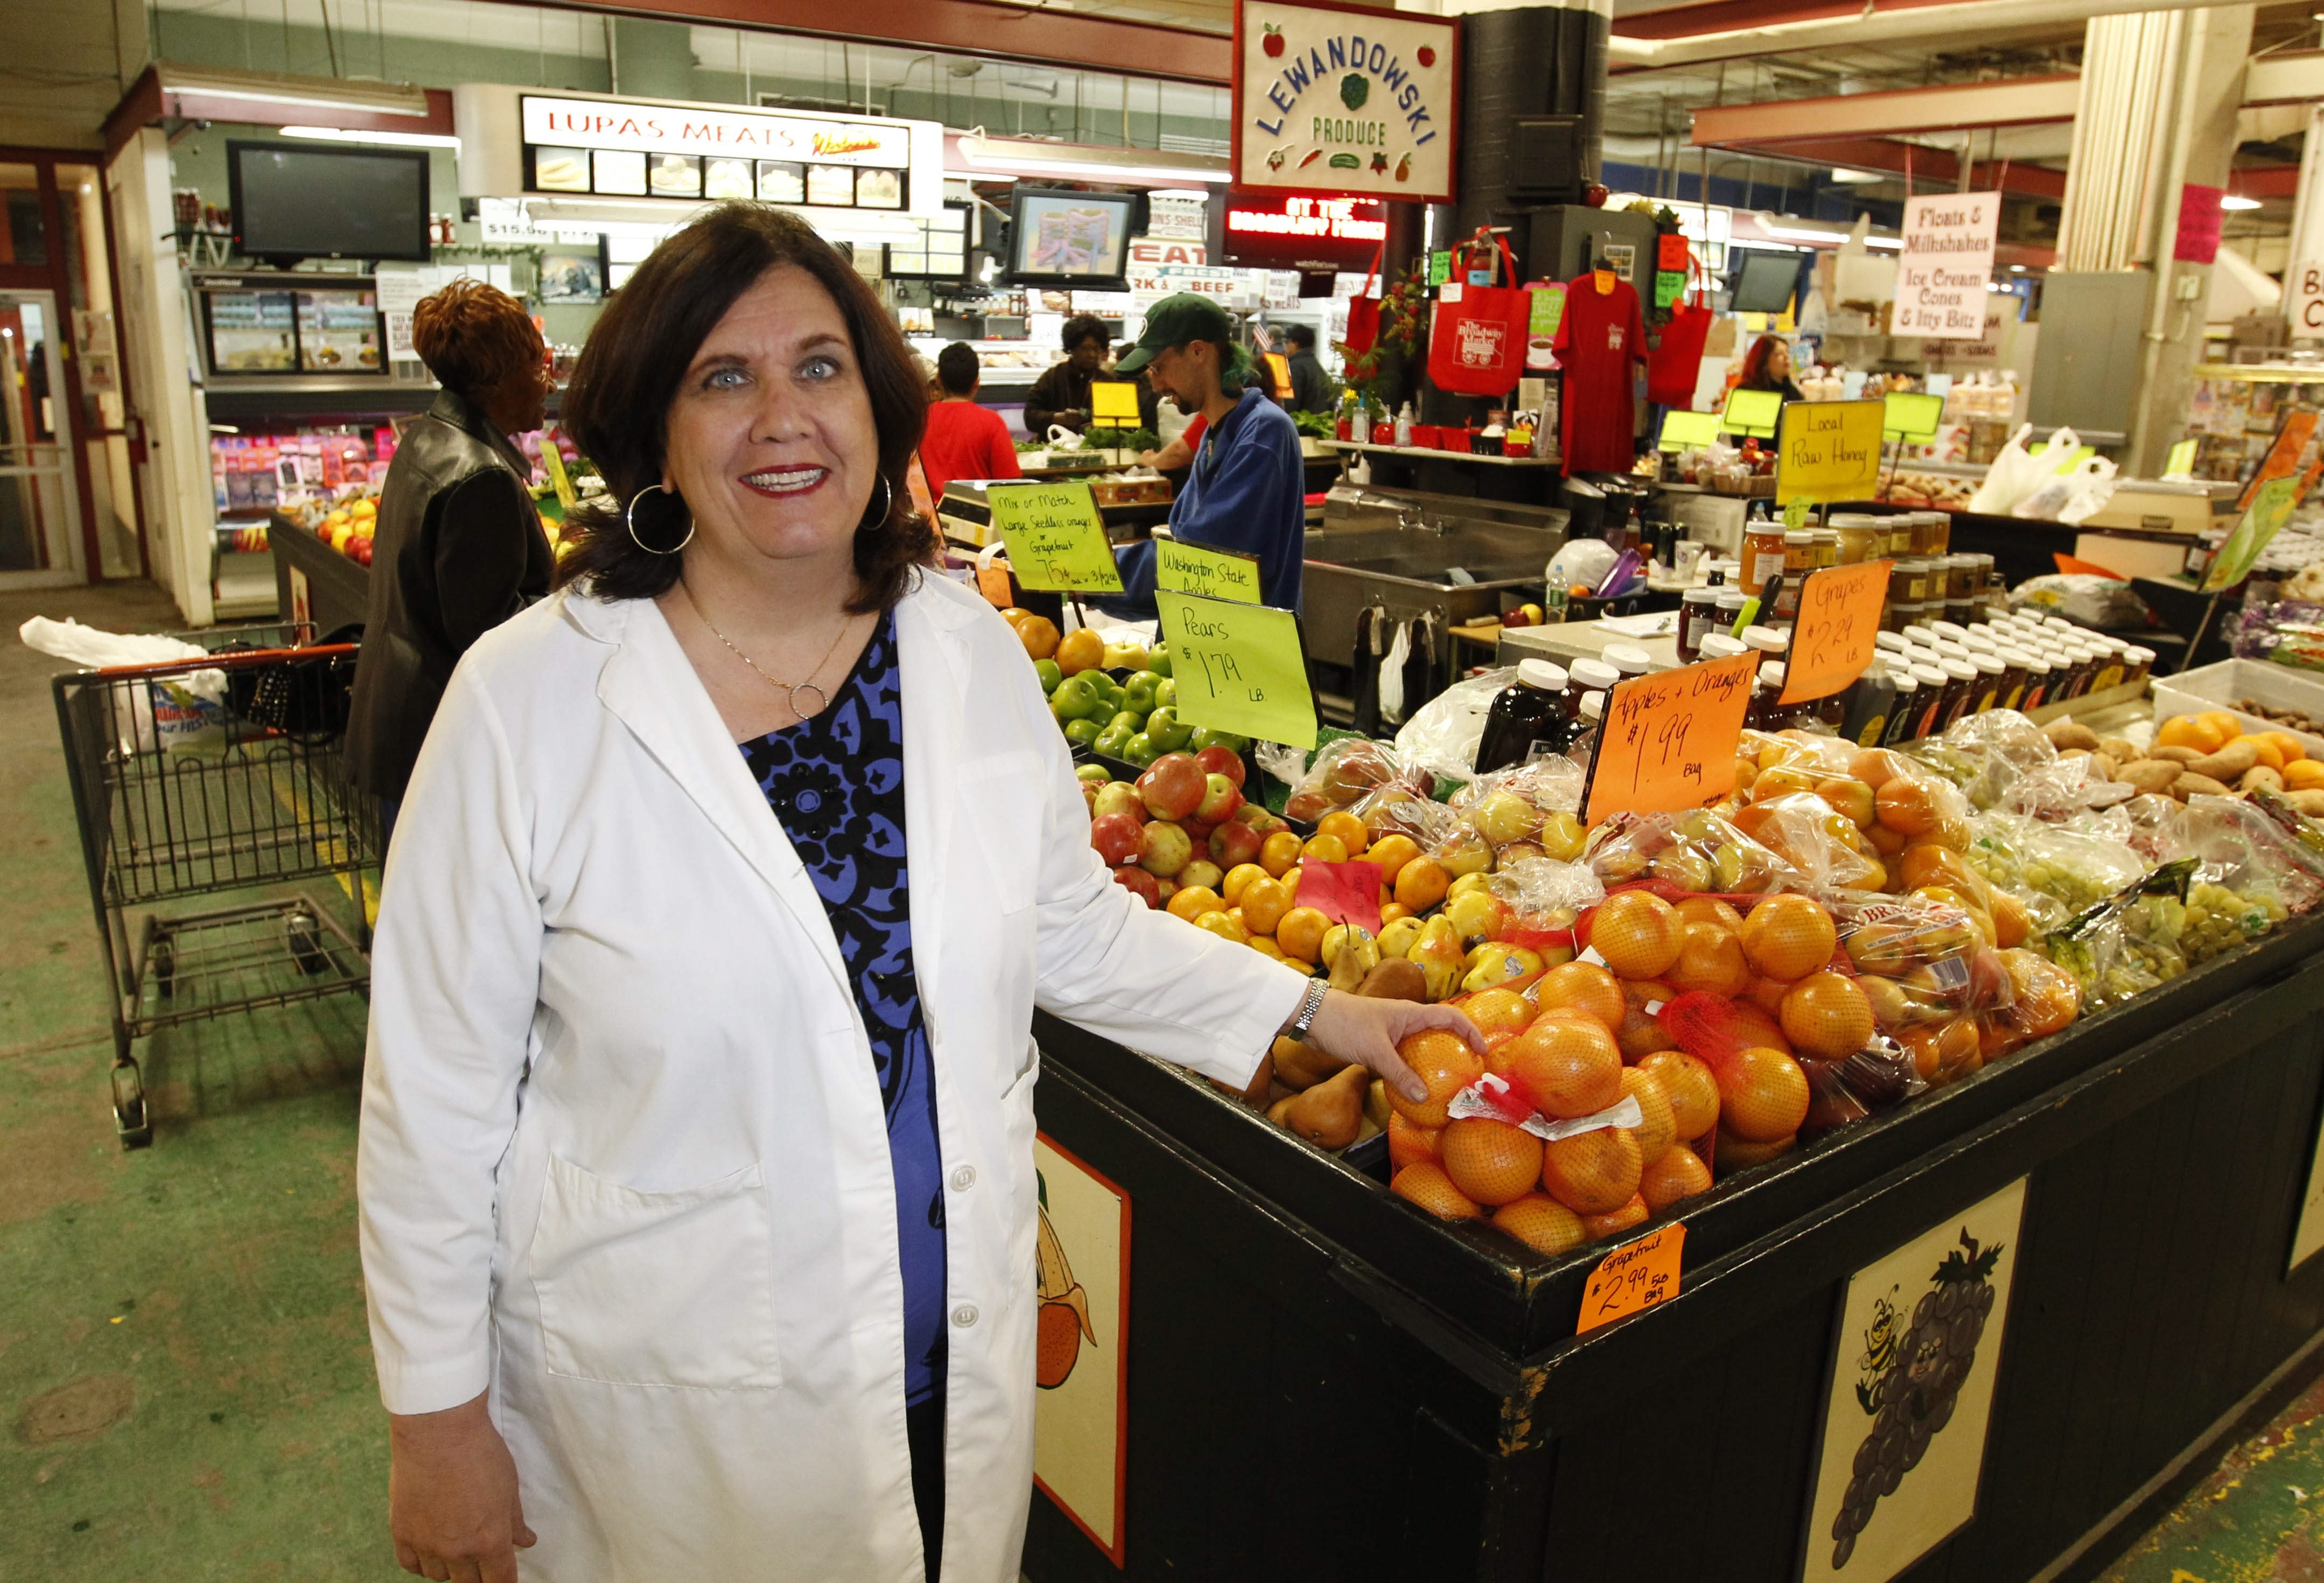 Mary Rose Gaughan of Hamburg helped organize the upcoming Day of Health at the Broadway Market.